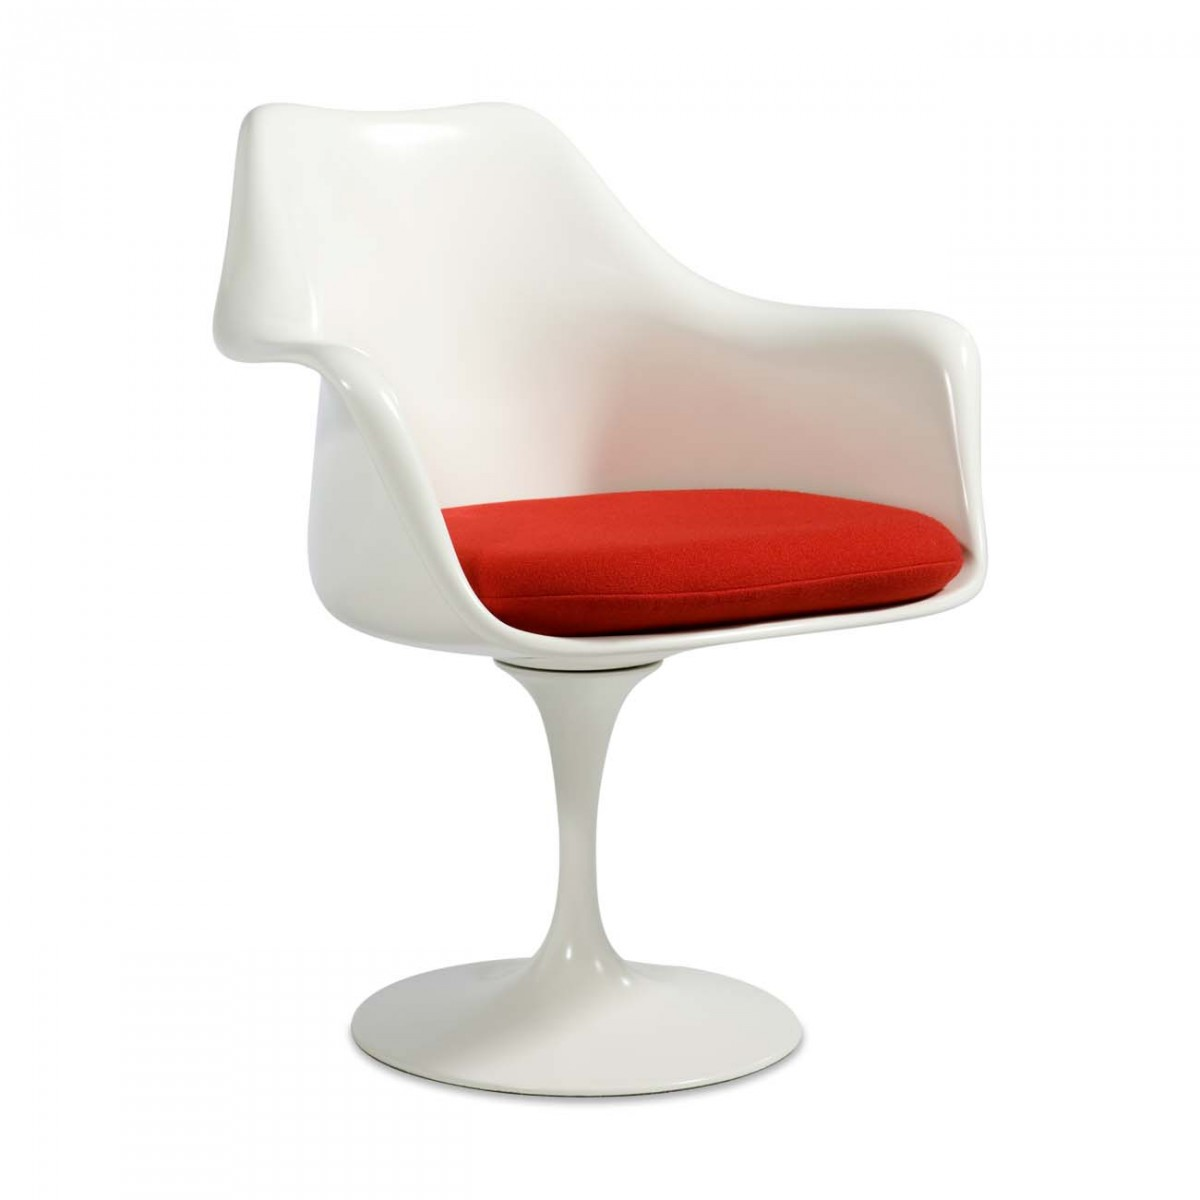 Habimat take a seat sedute famose for Eero saarinen tulip armchair